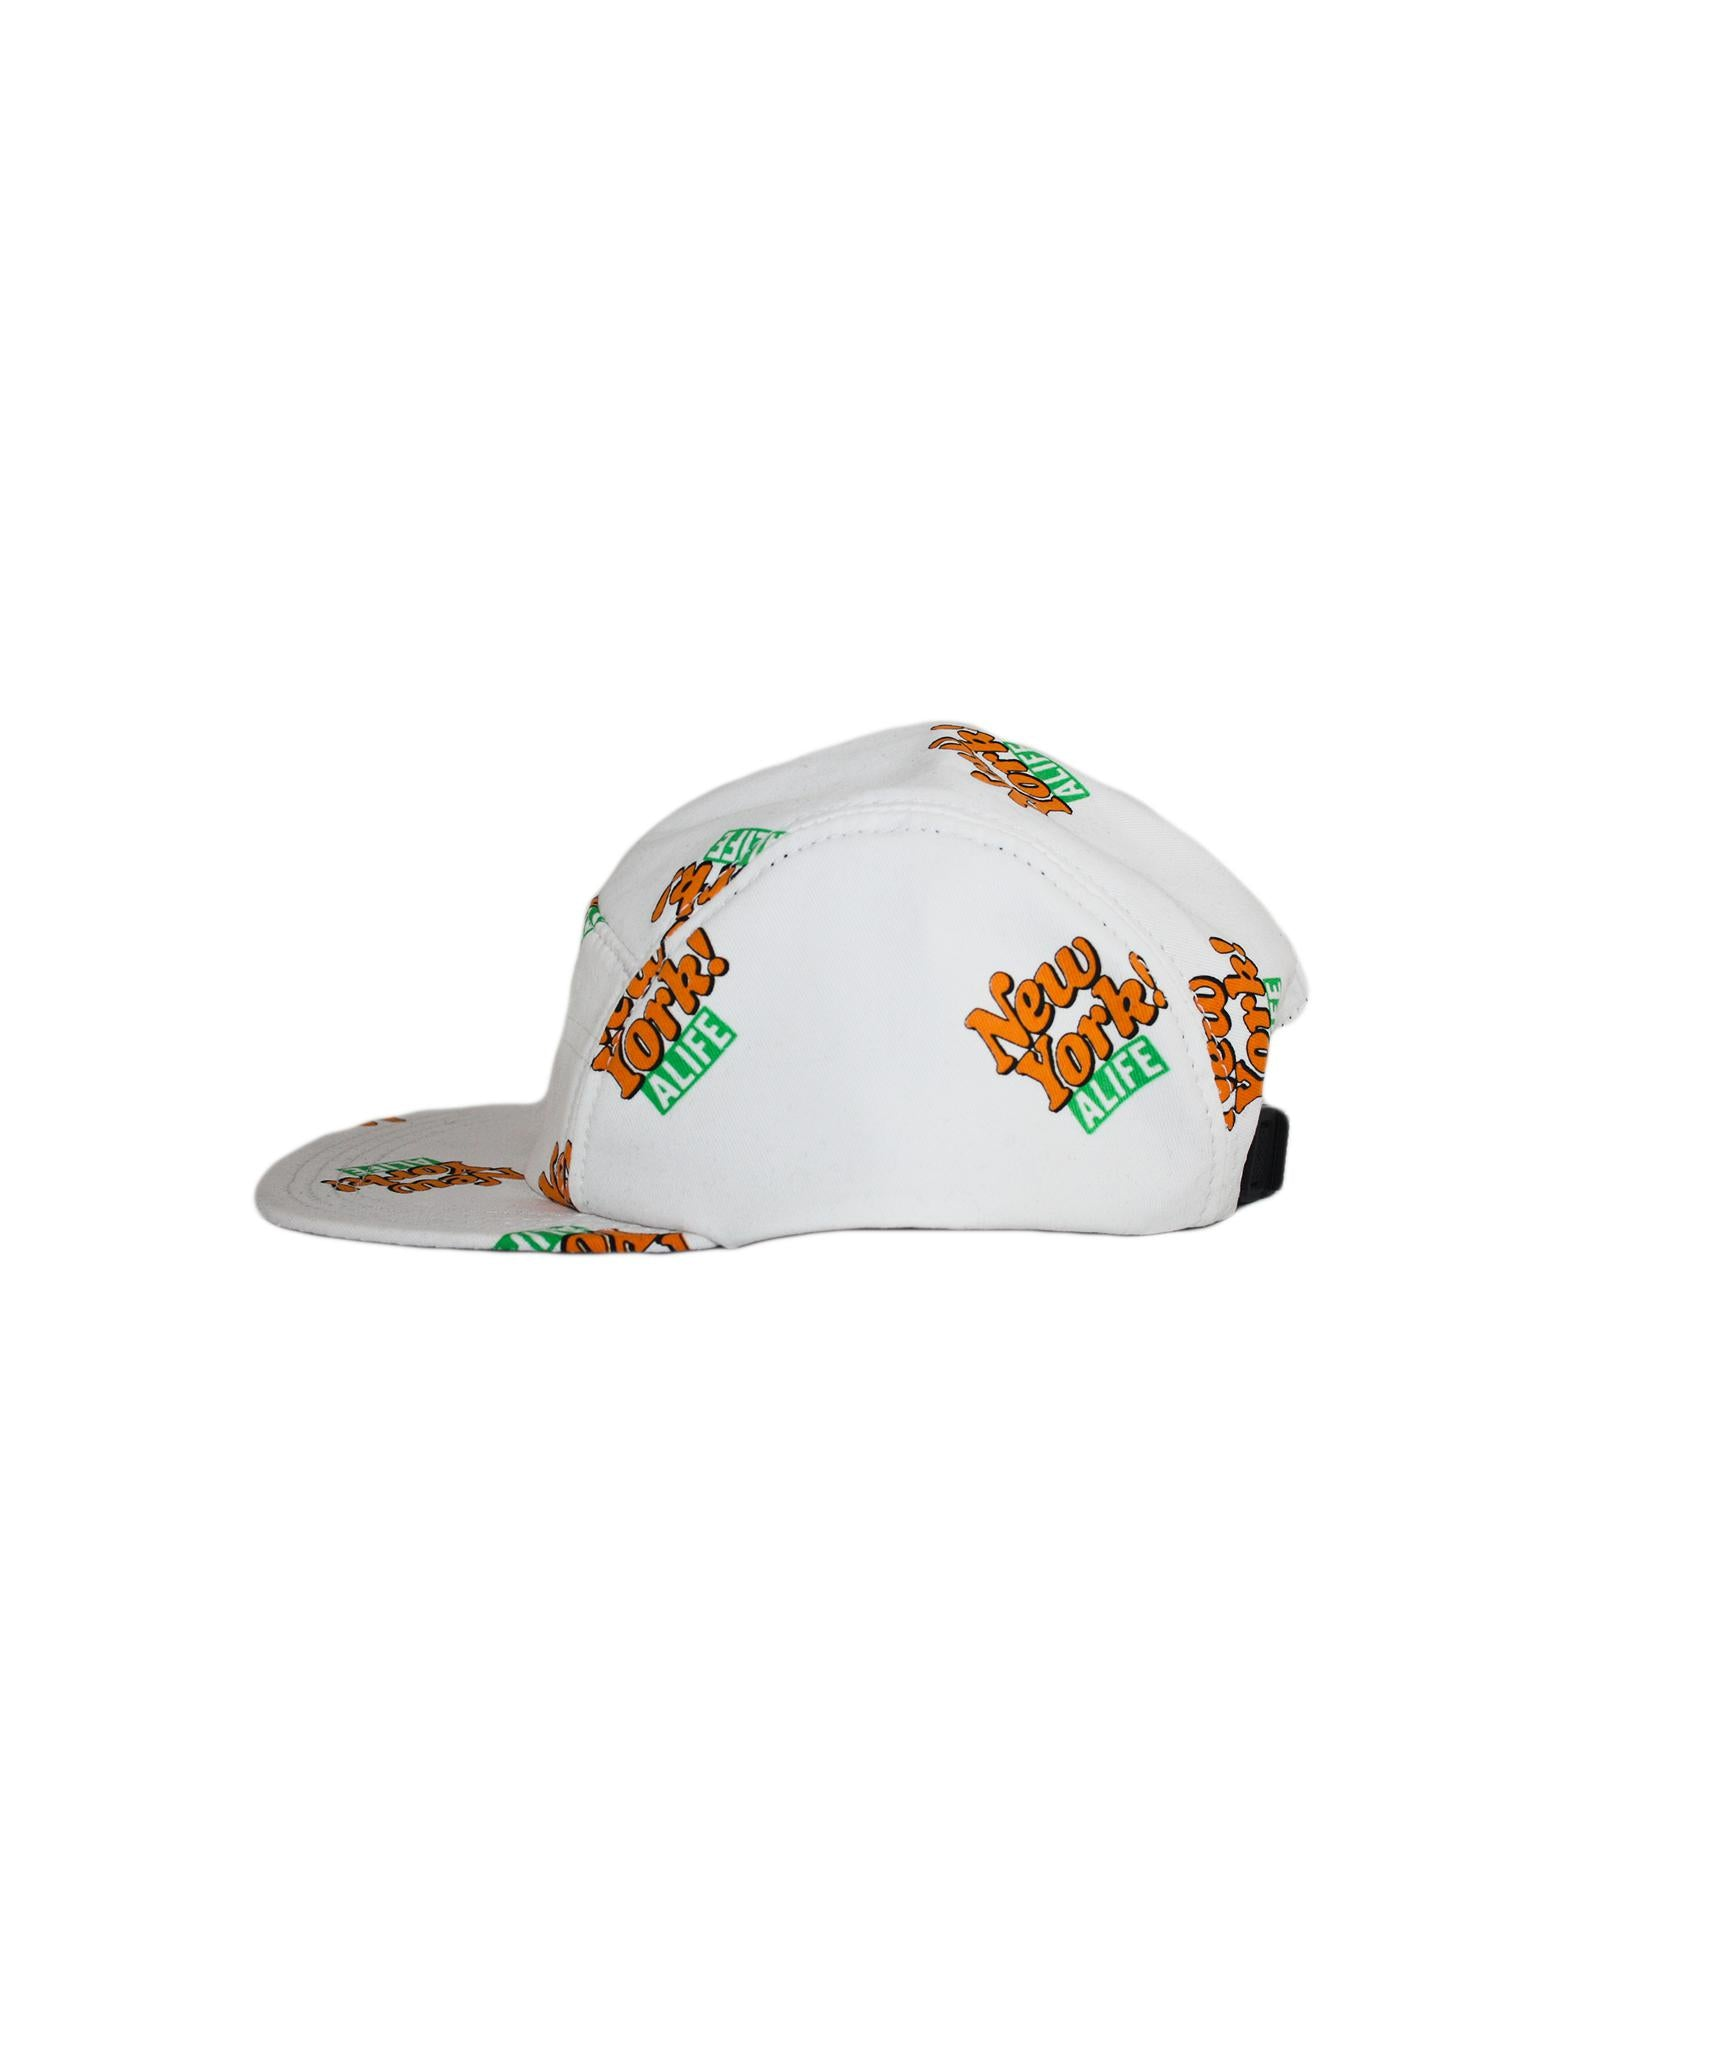 Alife Upcycle Hat - New York! Carpenter Pant - White/Orange/Green